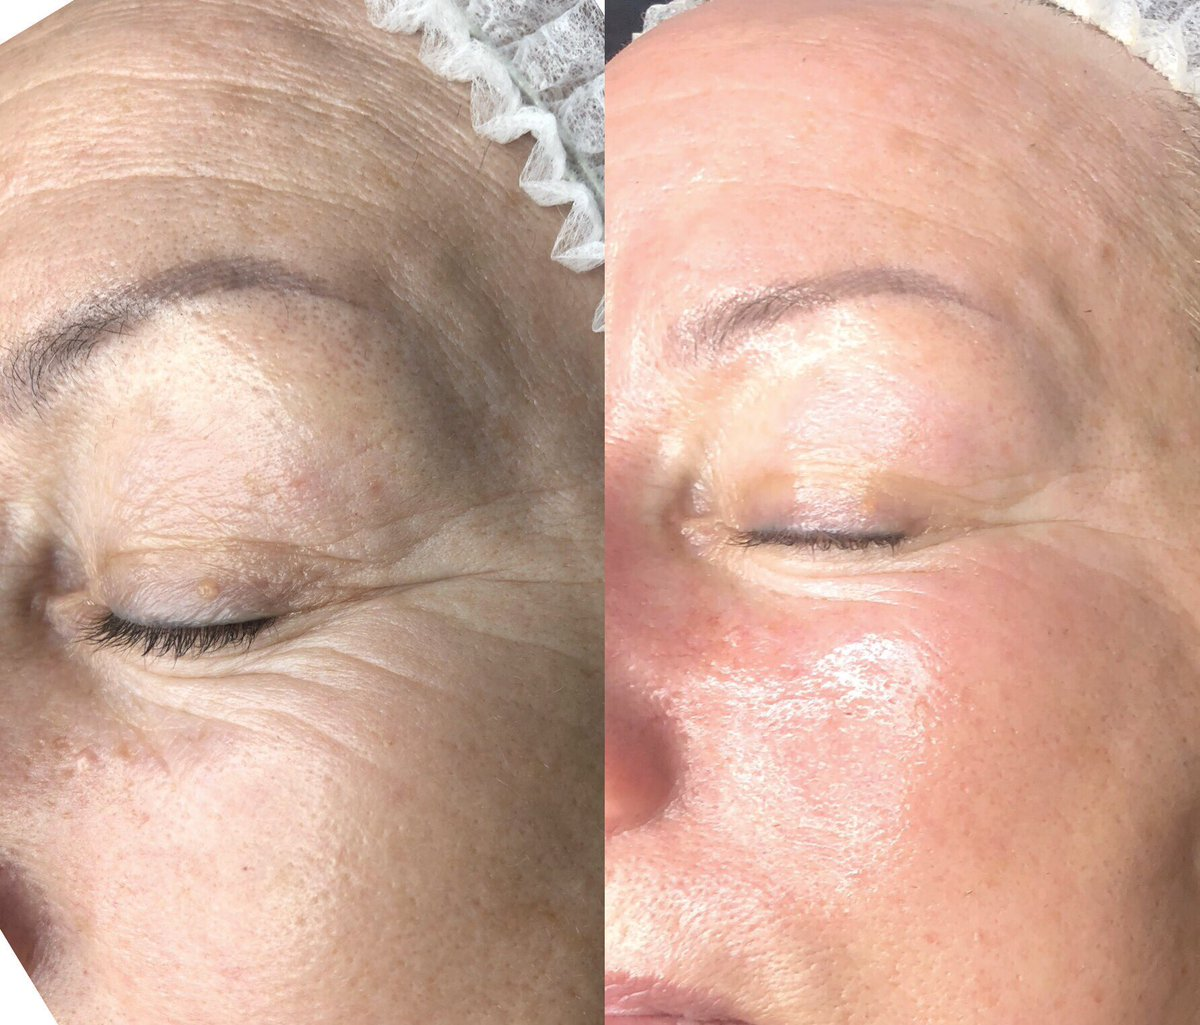 10 Years Younger  After 1 Million Dollar Facial Awesome result  #Milliondollarfacials #milliondollarfacial #Carbonpeel #miraclemask #dermaplane #dermaplaning #skincare #facial #beauty #dermaplaningfacial #facials #microneedling #skinneedlng  #skintherapist #glowingskin  #peelspic.twitter.com/qq7rUSfni7